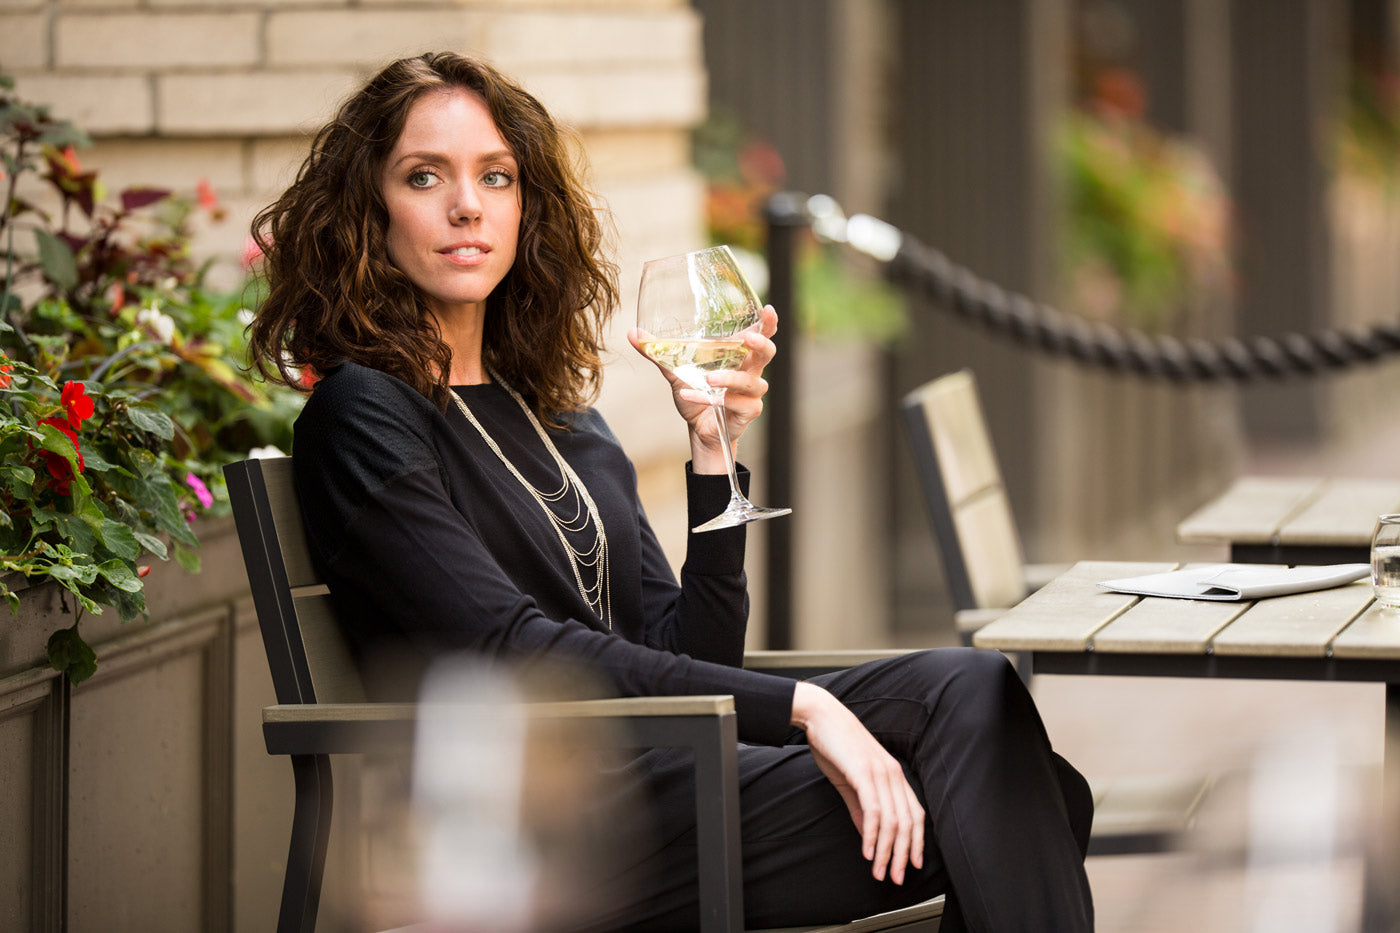 Kathyrn Boren, relaxing with a glass of white wine, wearing MPG clothing